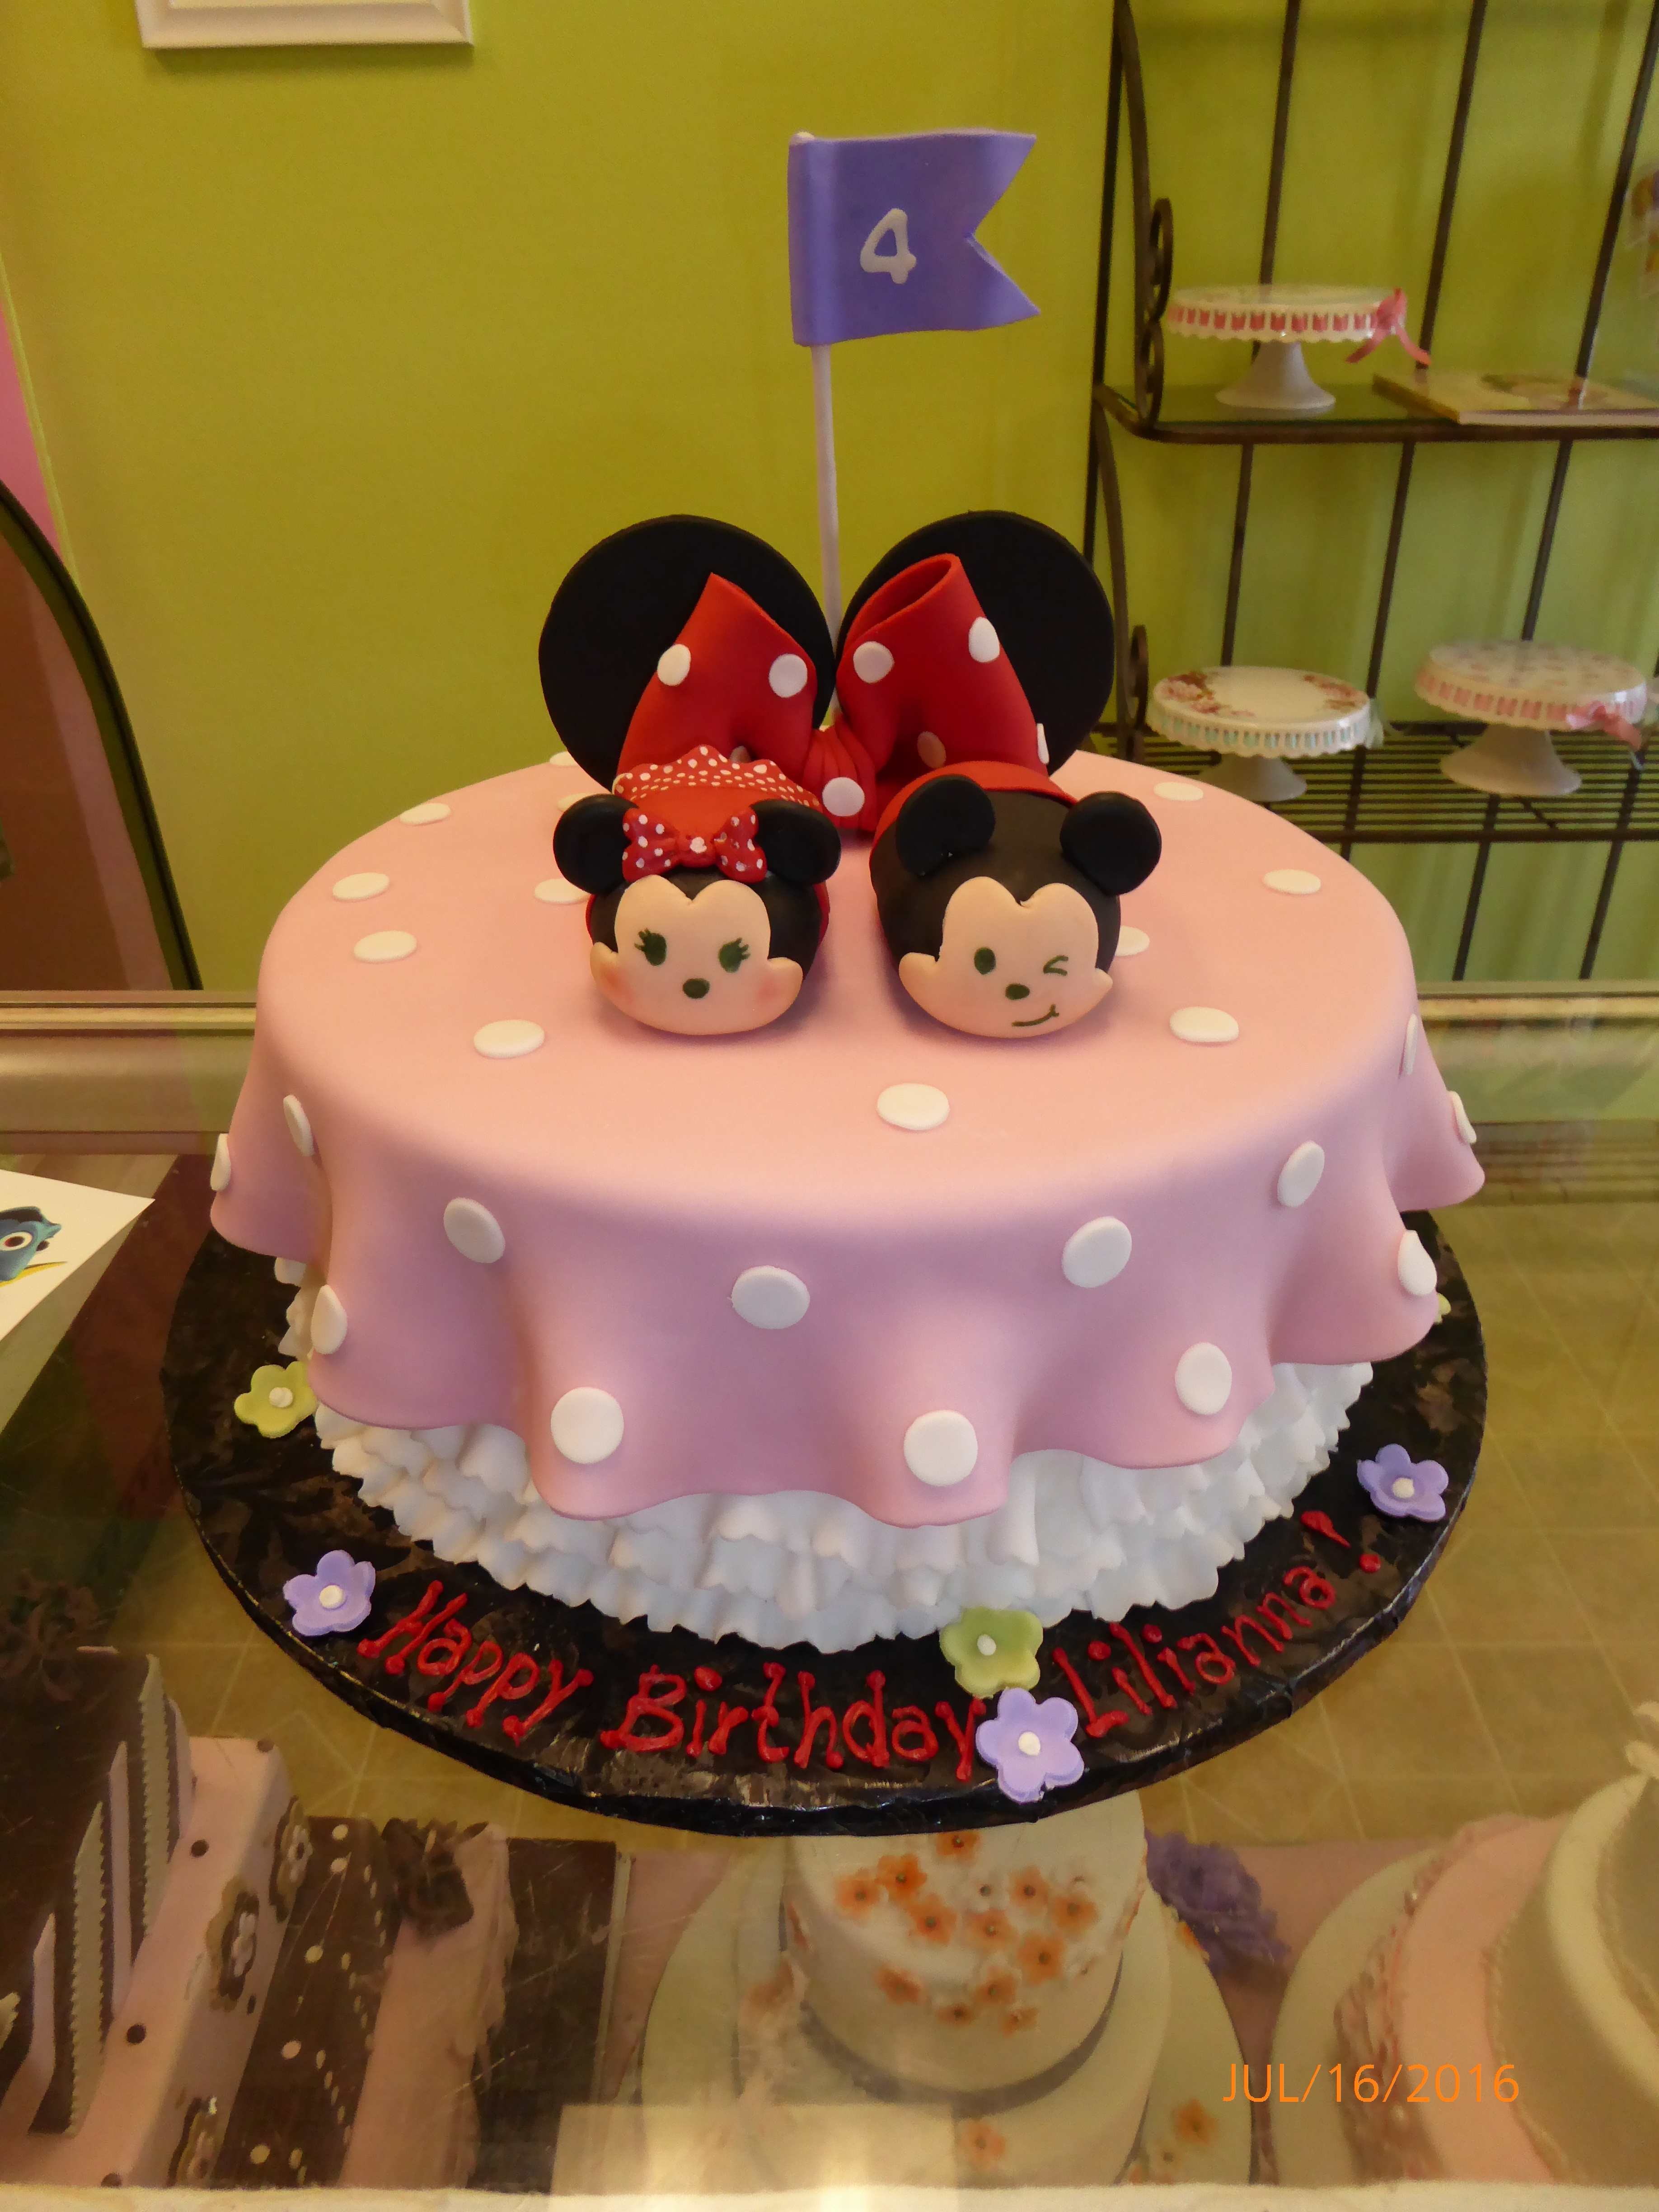 3010, 4th birthday, disney, mickey, minnie, tsum tsum, pink, red, dot, dots, ears, figure, figures